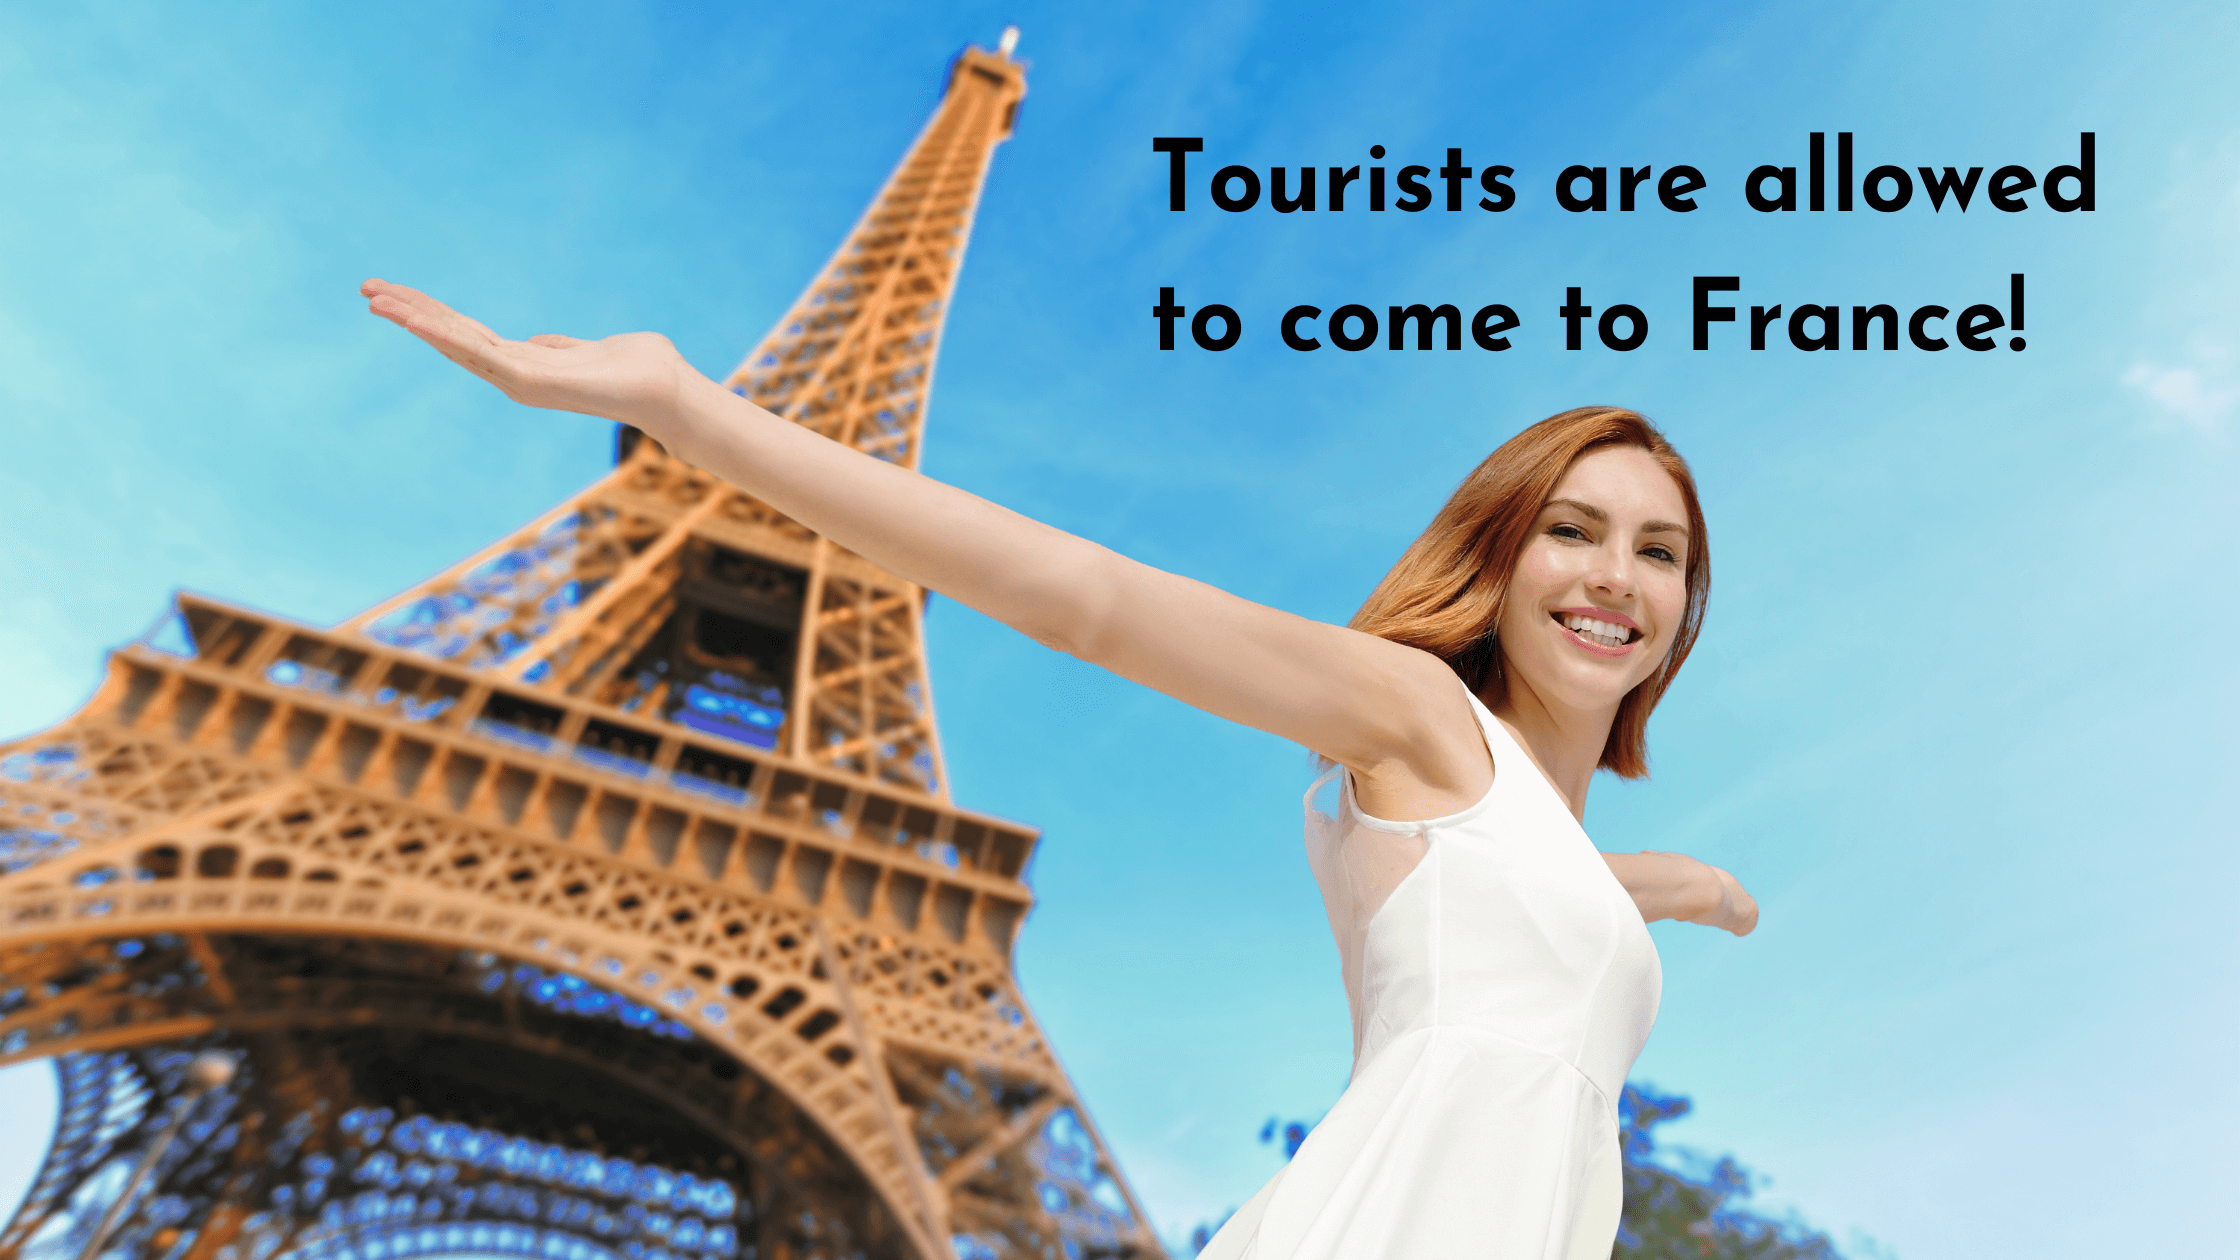 Tourists are allowed to come to France.